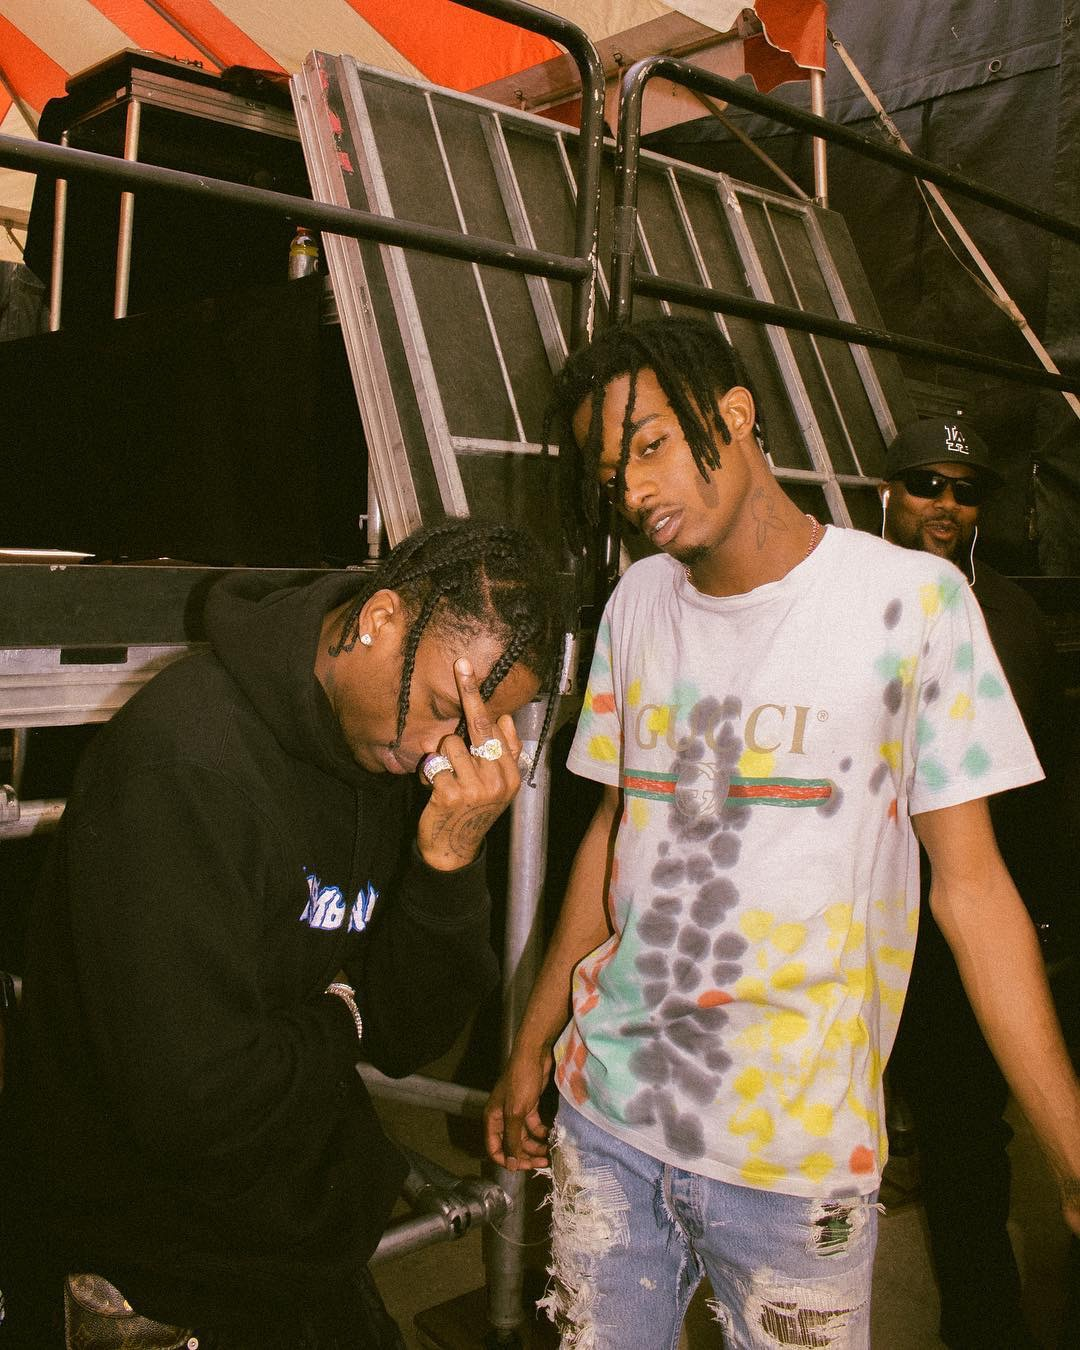 SPOTTED: Playboi Carti Wears Gucci with Travis Scott